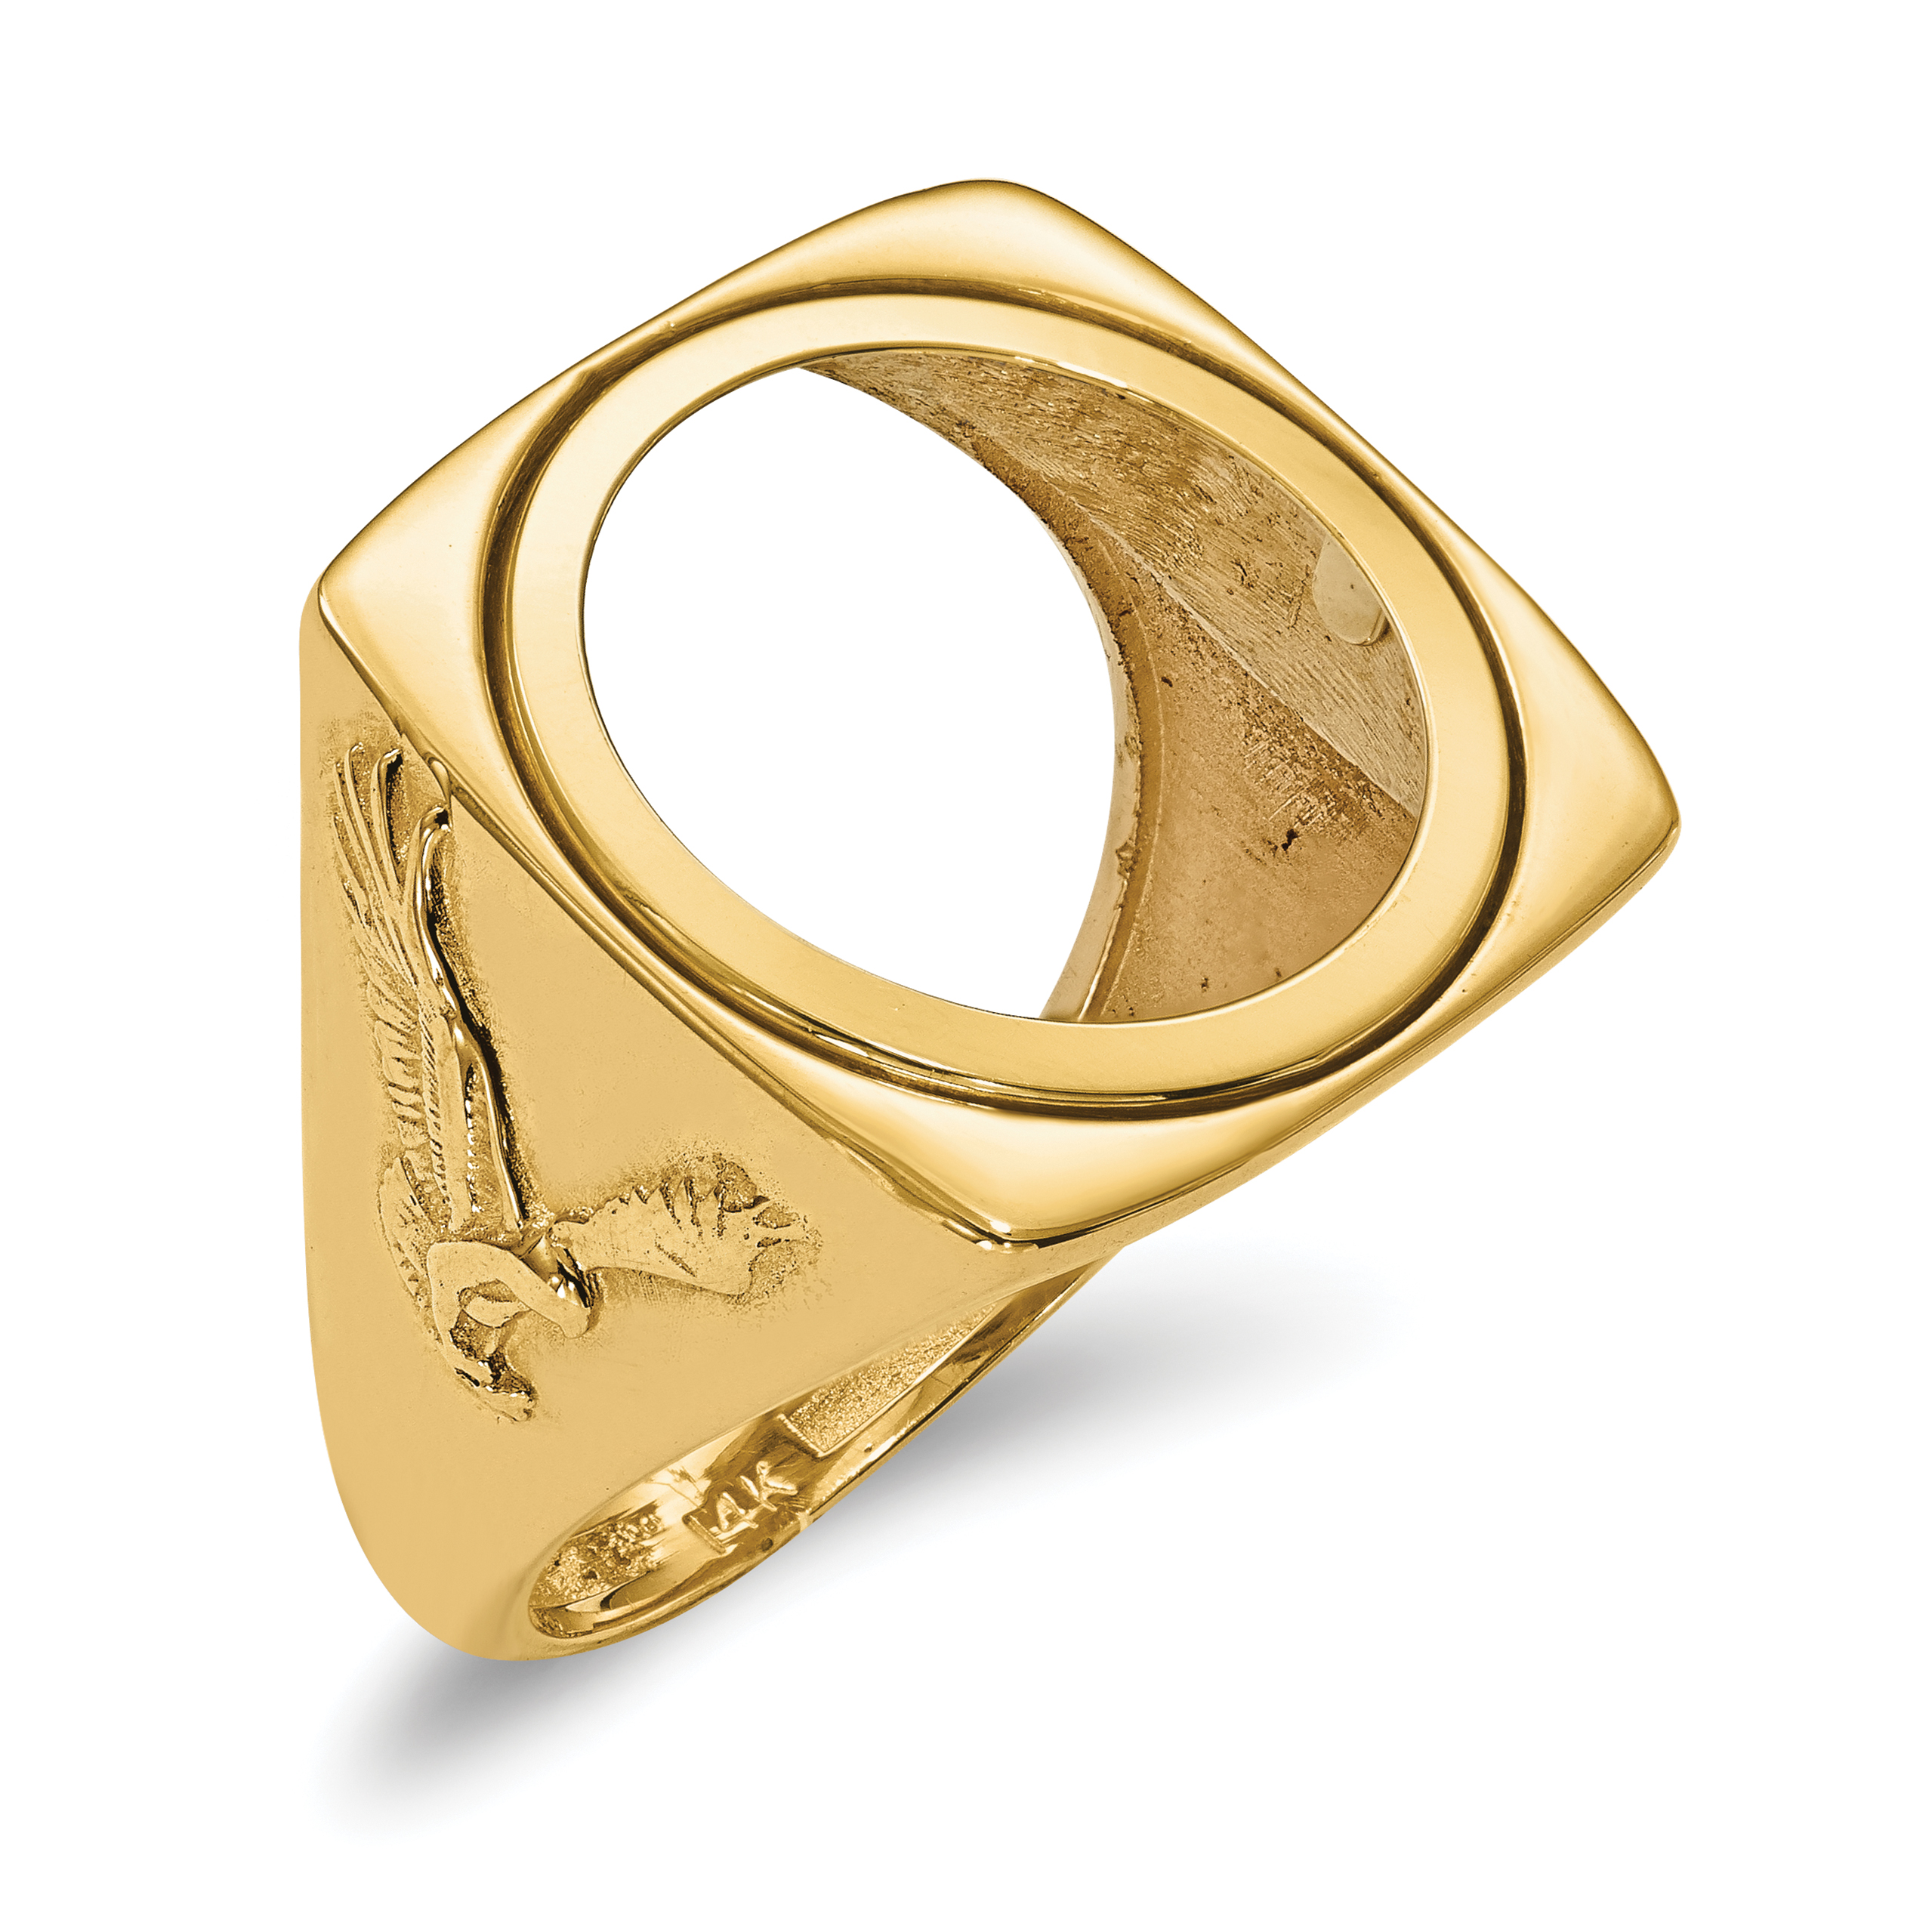 14k Yellow Gold 1/10ae Coin Band Ring Size 10.00 Fine Jewelry Gifts For Women For Her - image 12 de 12